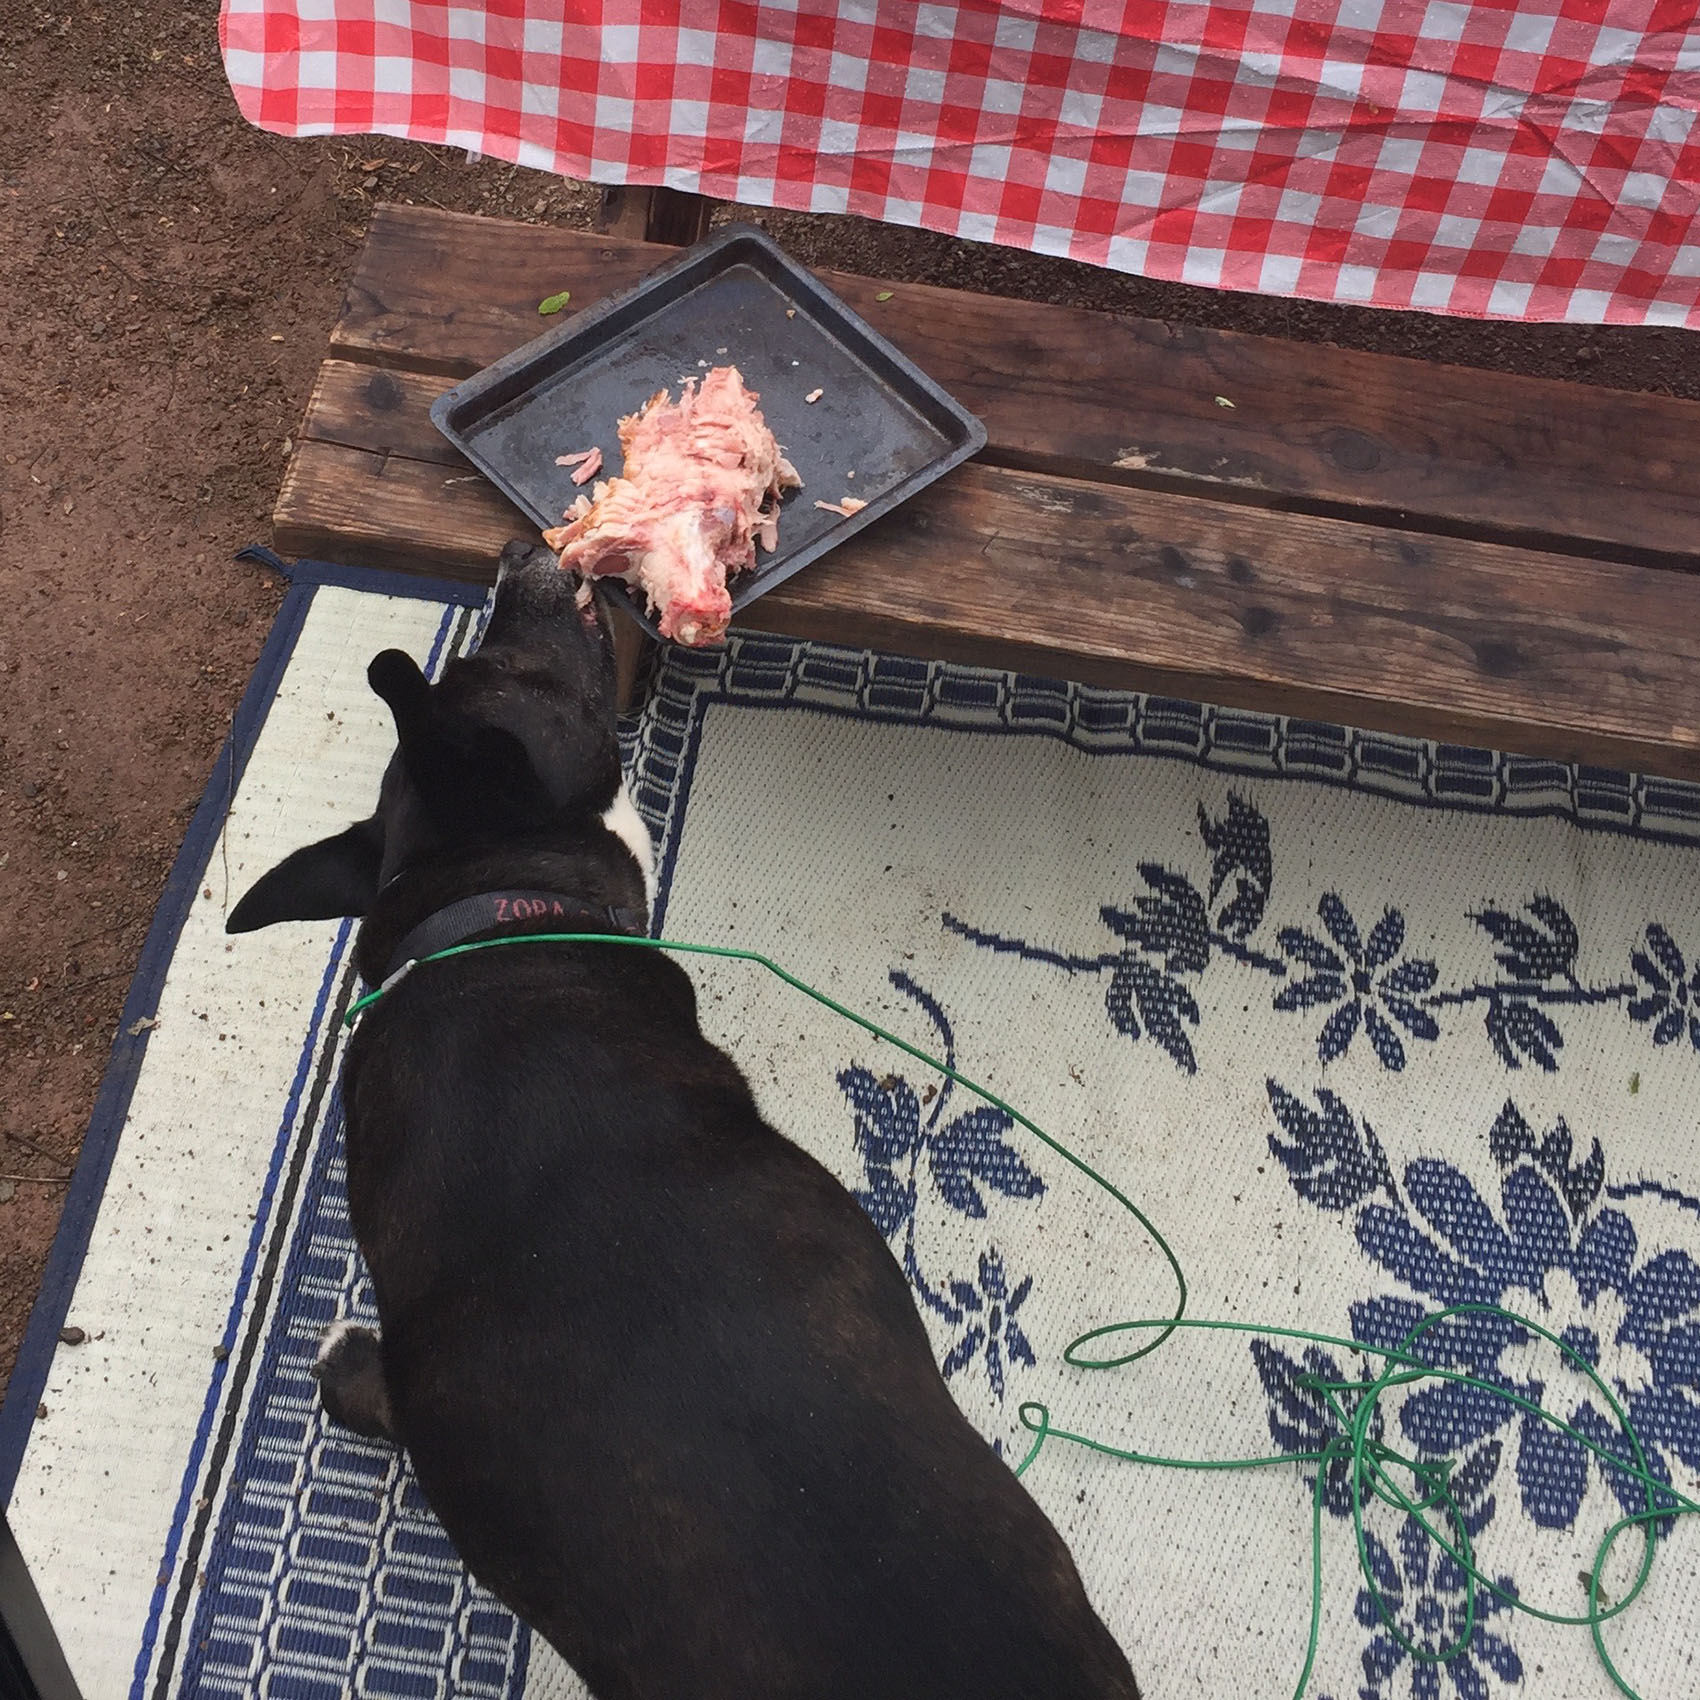 Zora happened to find a very juicy treat before whoever was barbecuing did.